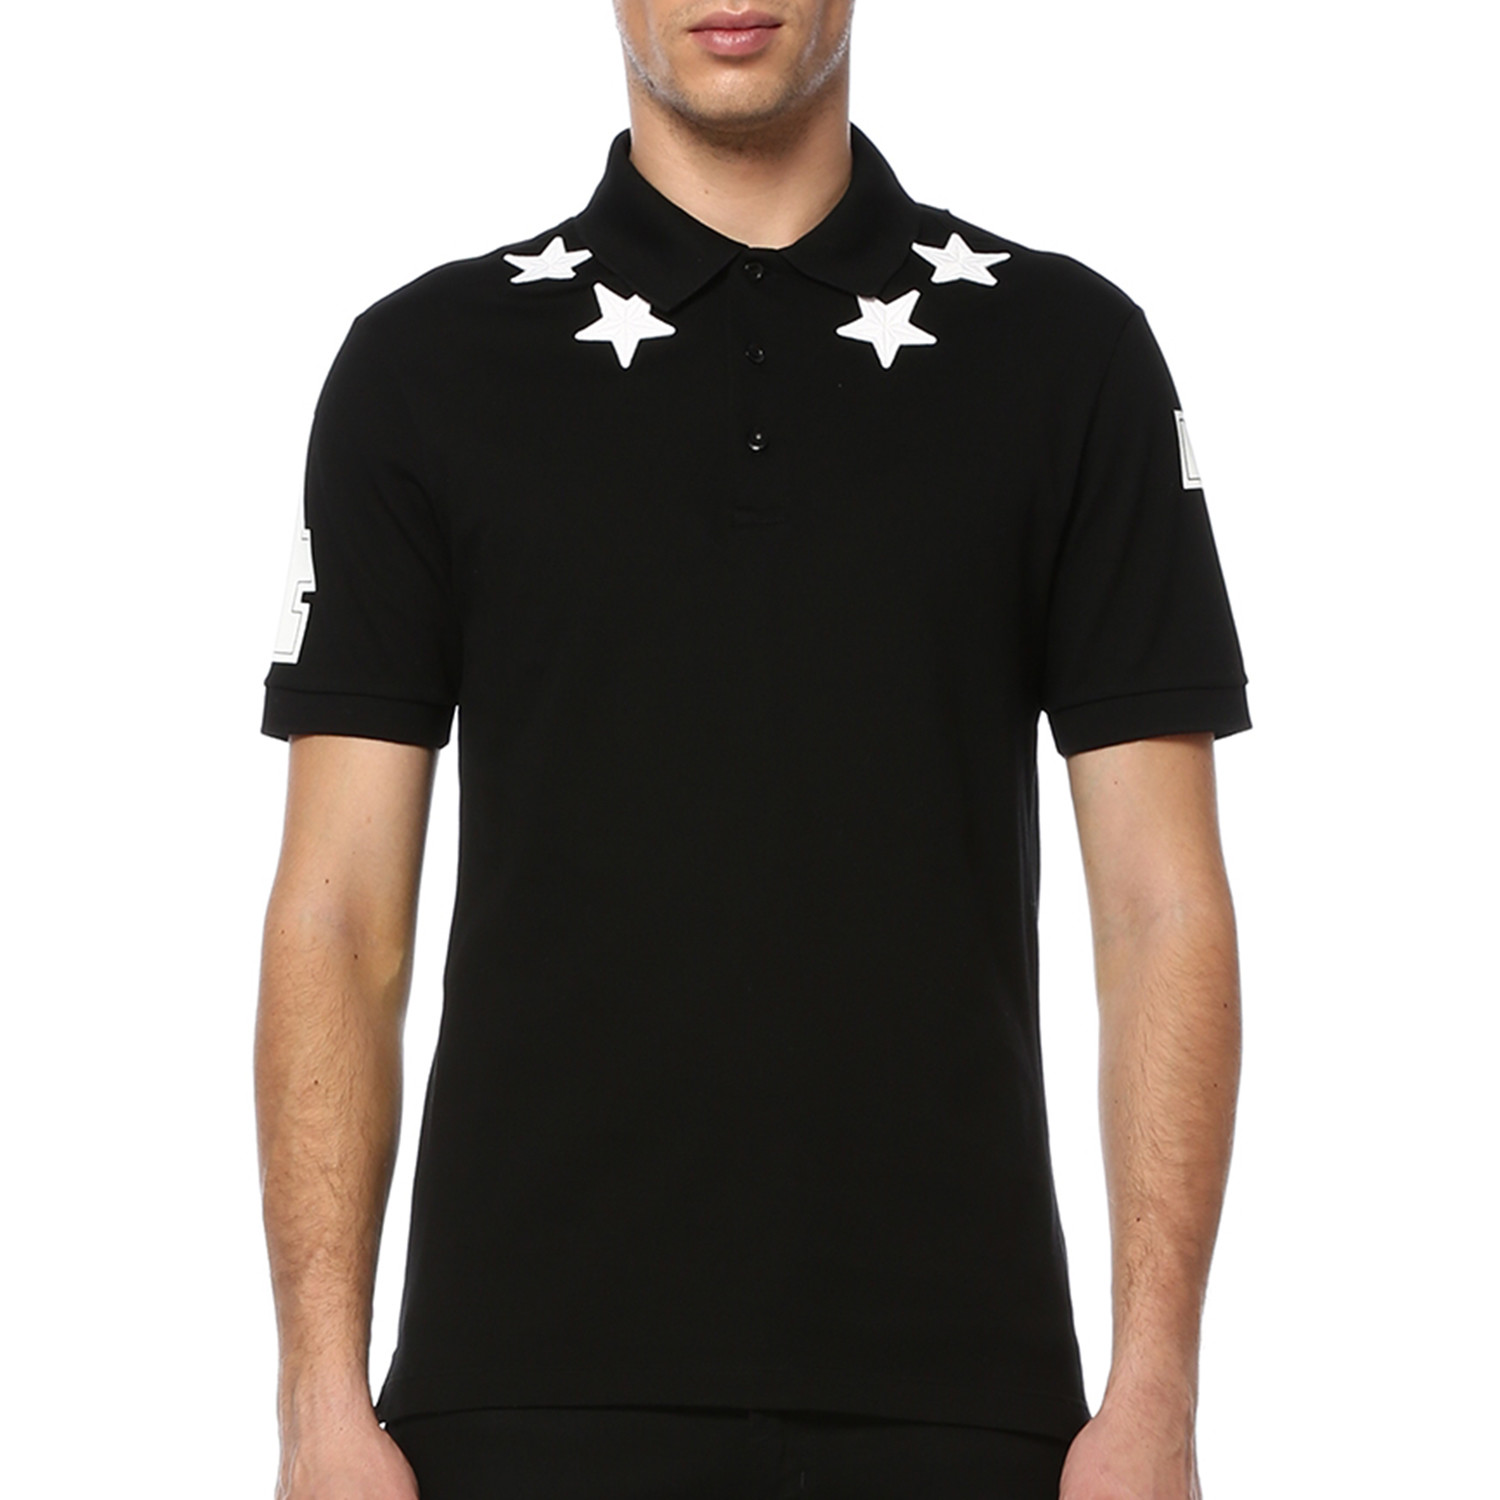 get cheap f7245 6b038 Givenchy Stars and 74 Details Polo // Black (S) - GIVENCHY ...